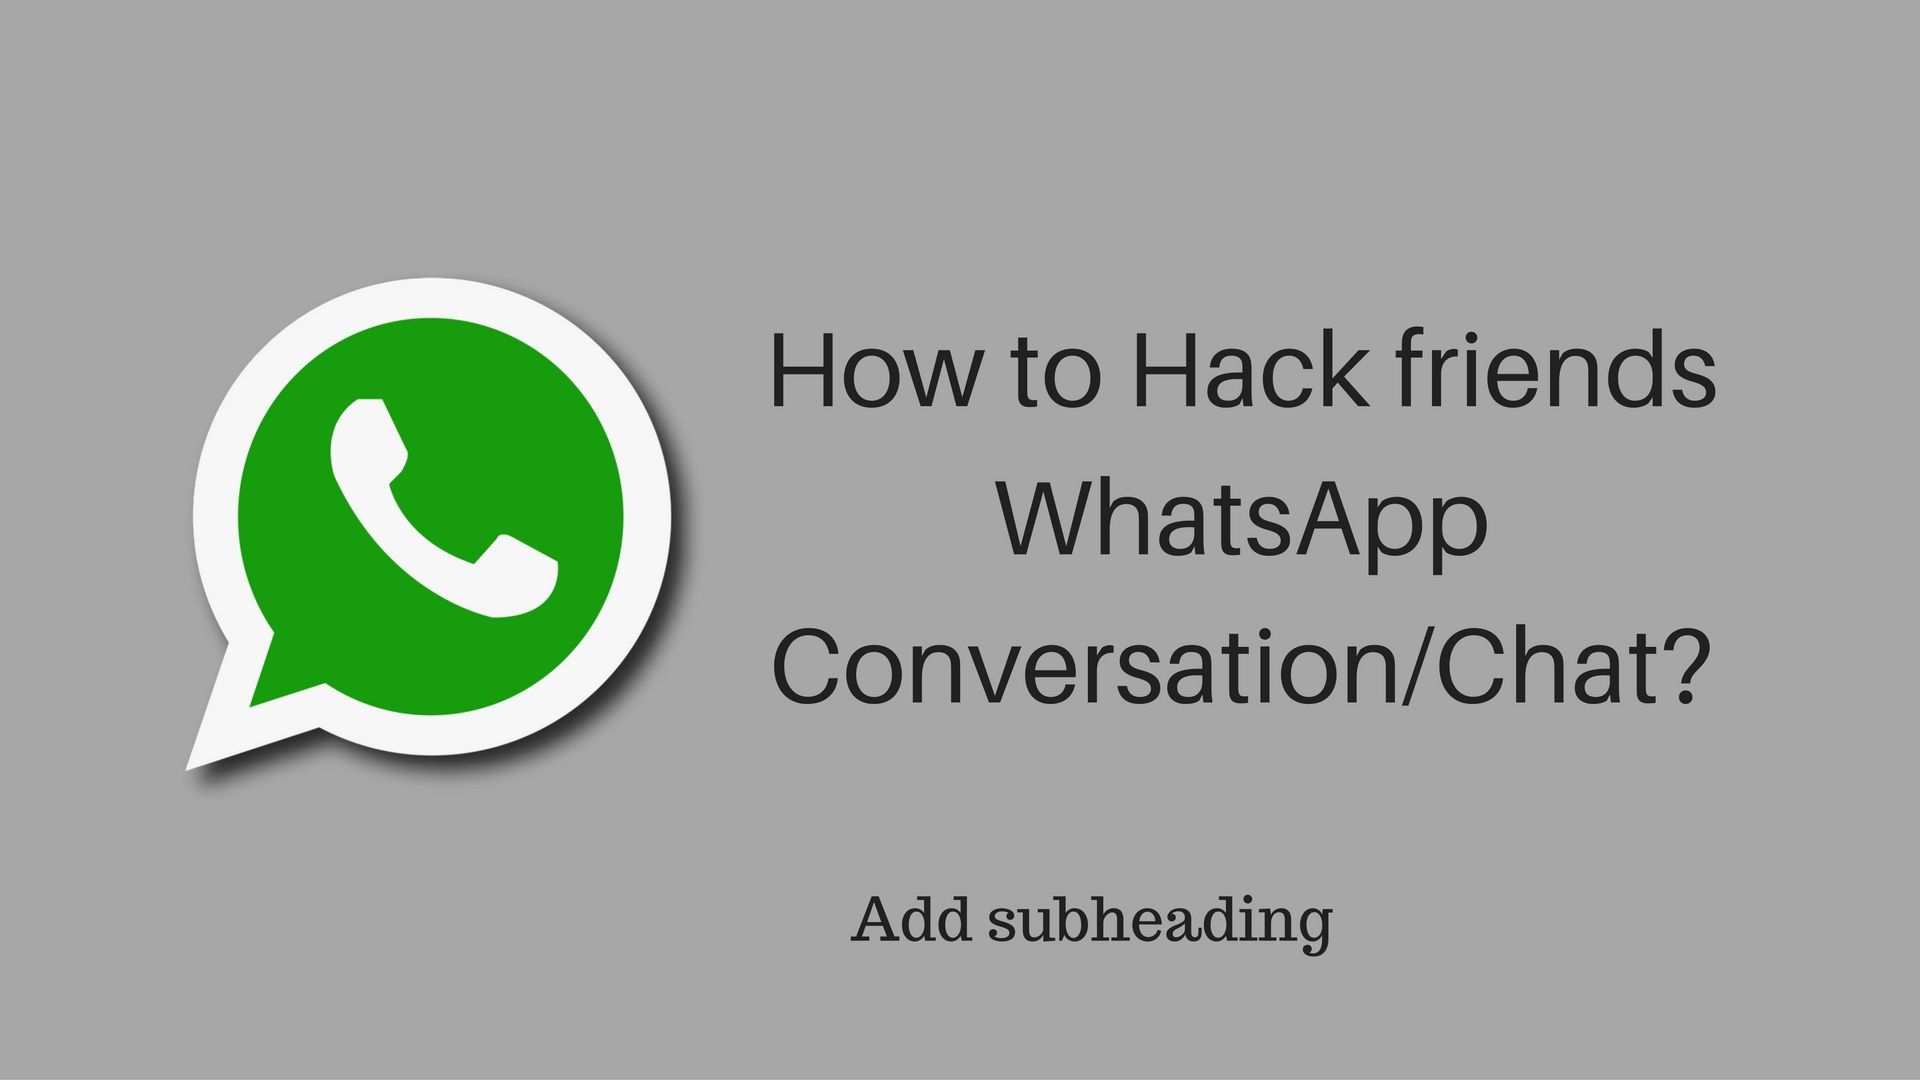 Hack friends WhatsApp Conversation/Chat